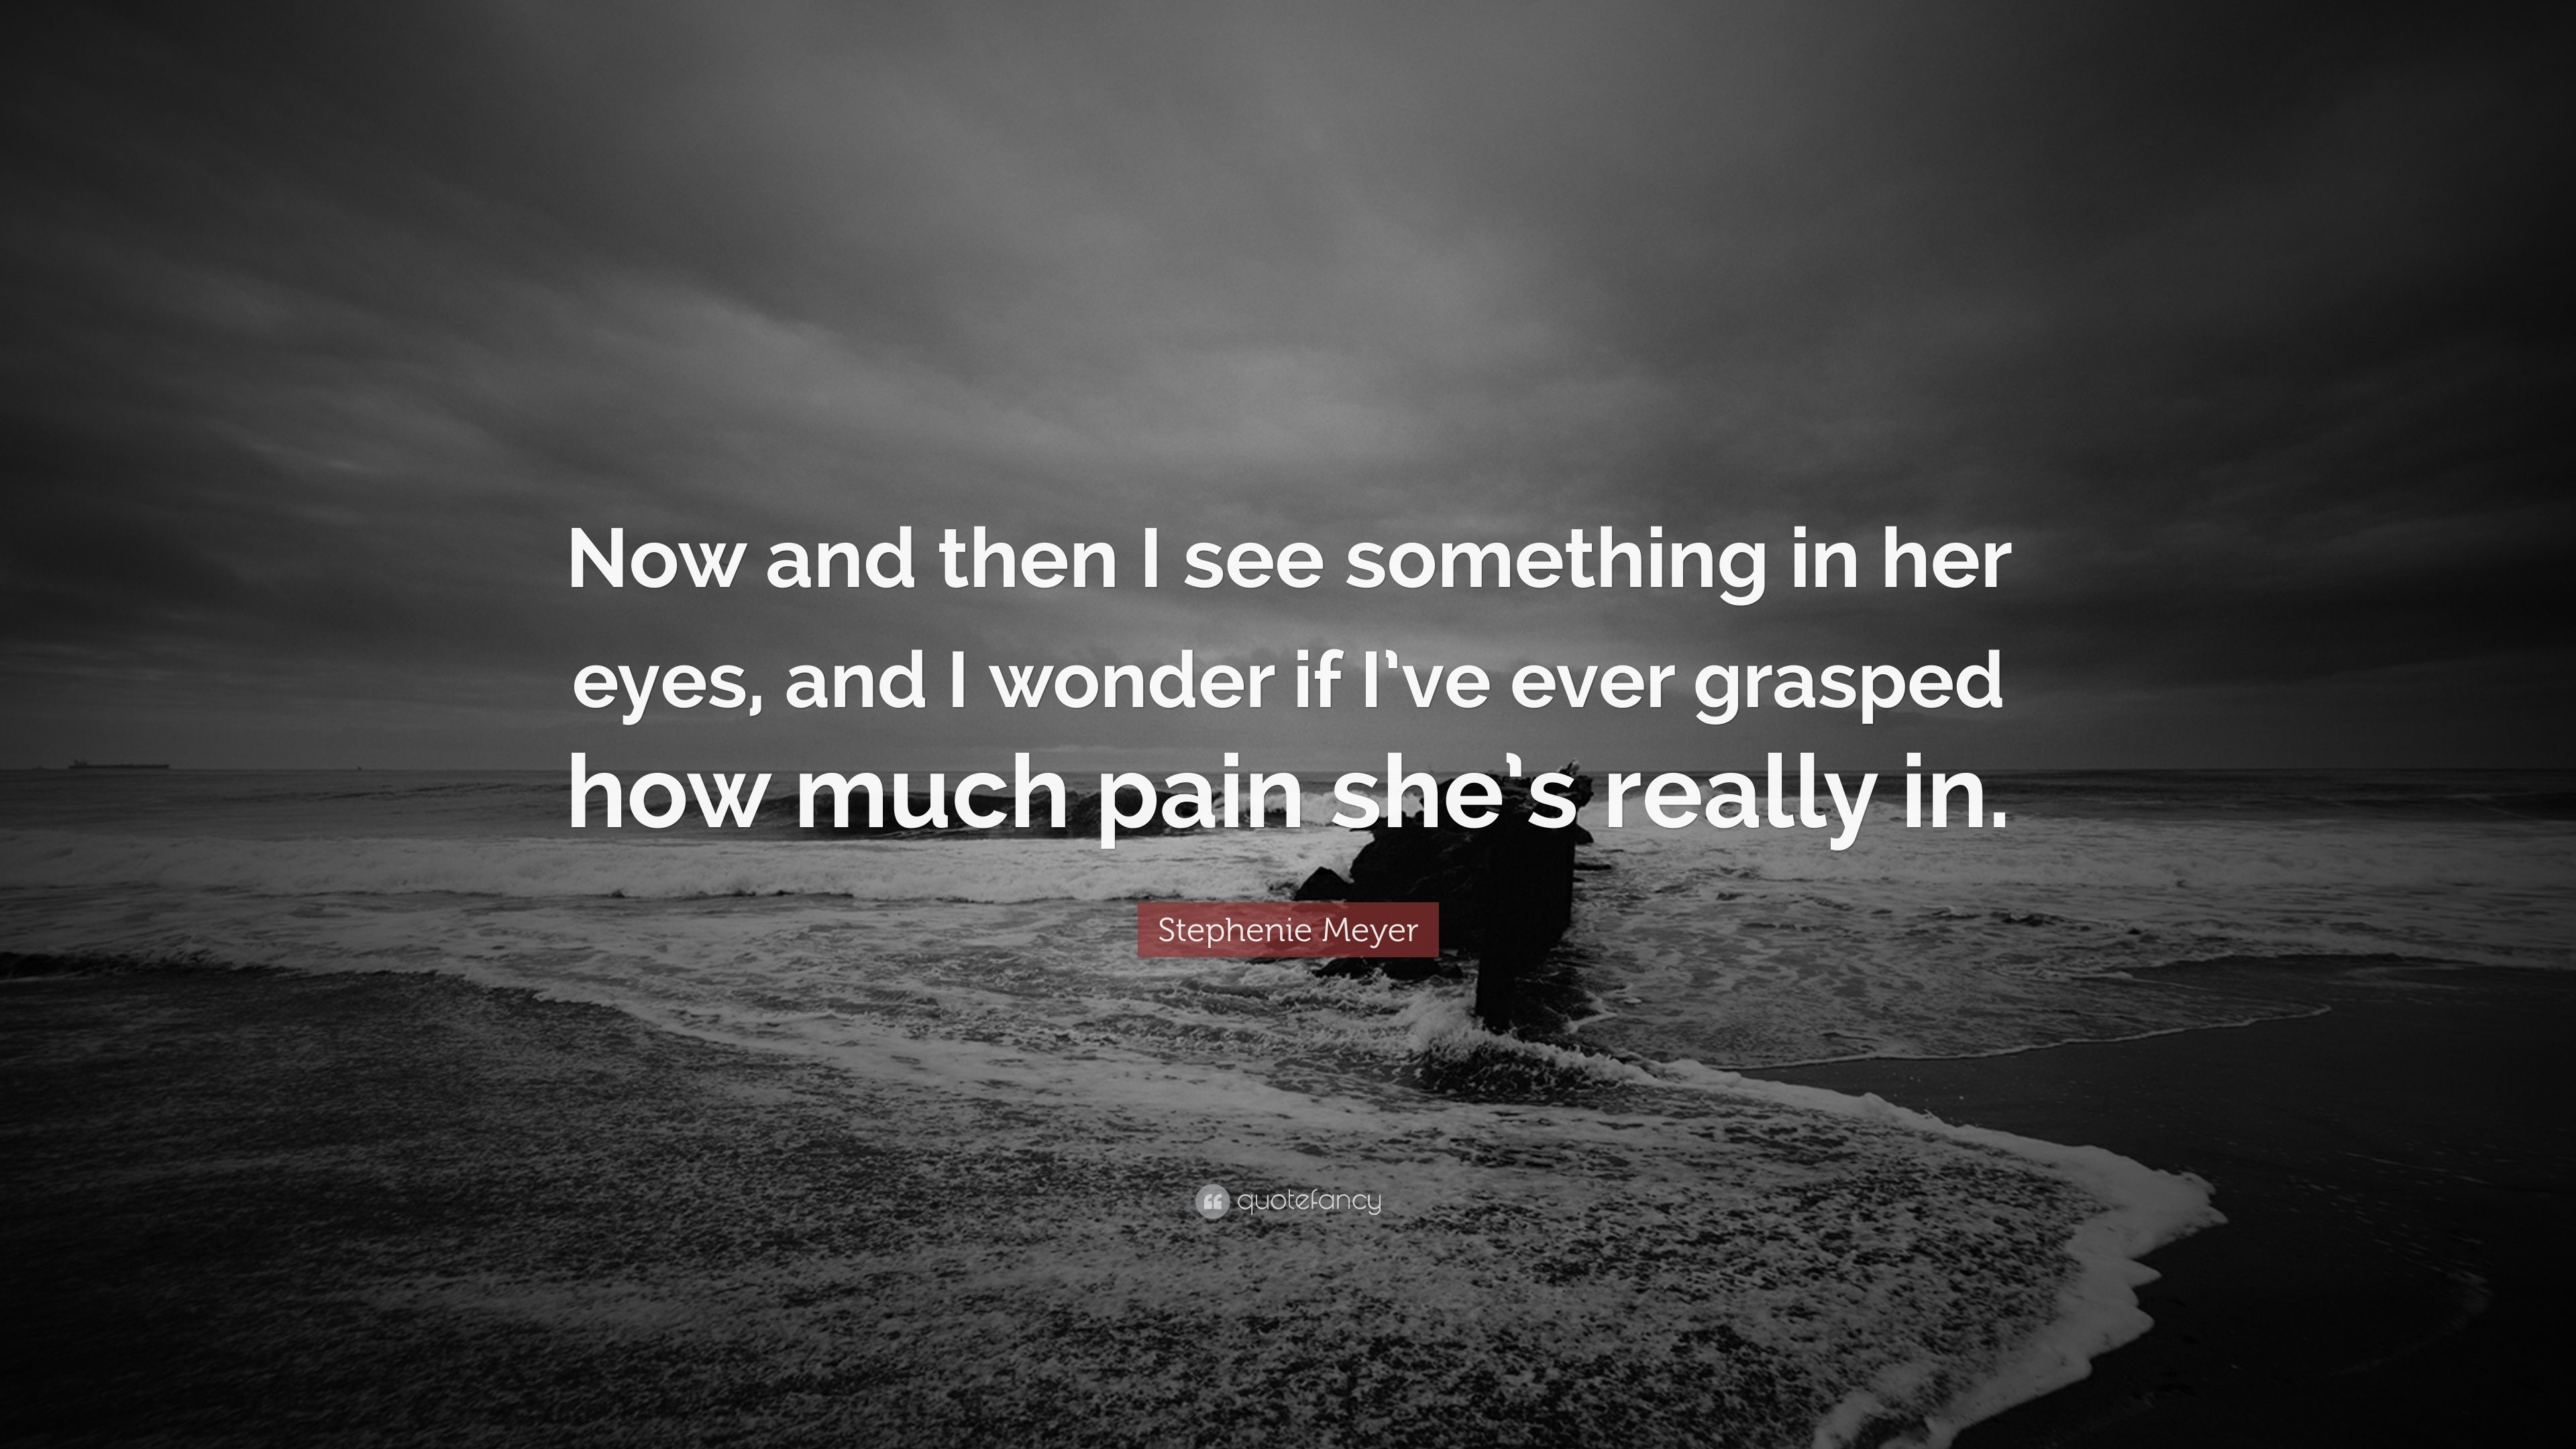 Stephenie Meyer Quote Now And Then I See Something In Her Eyes